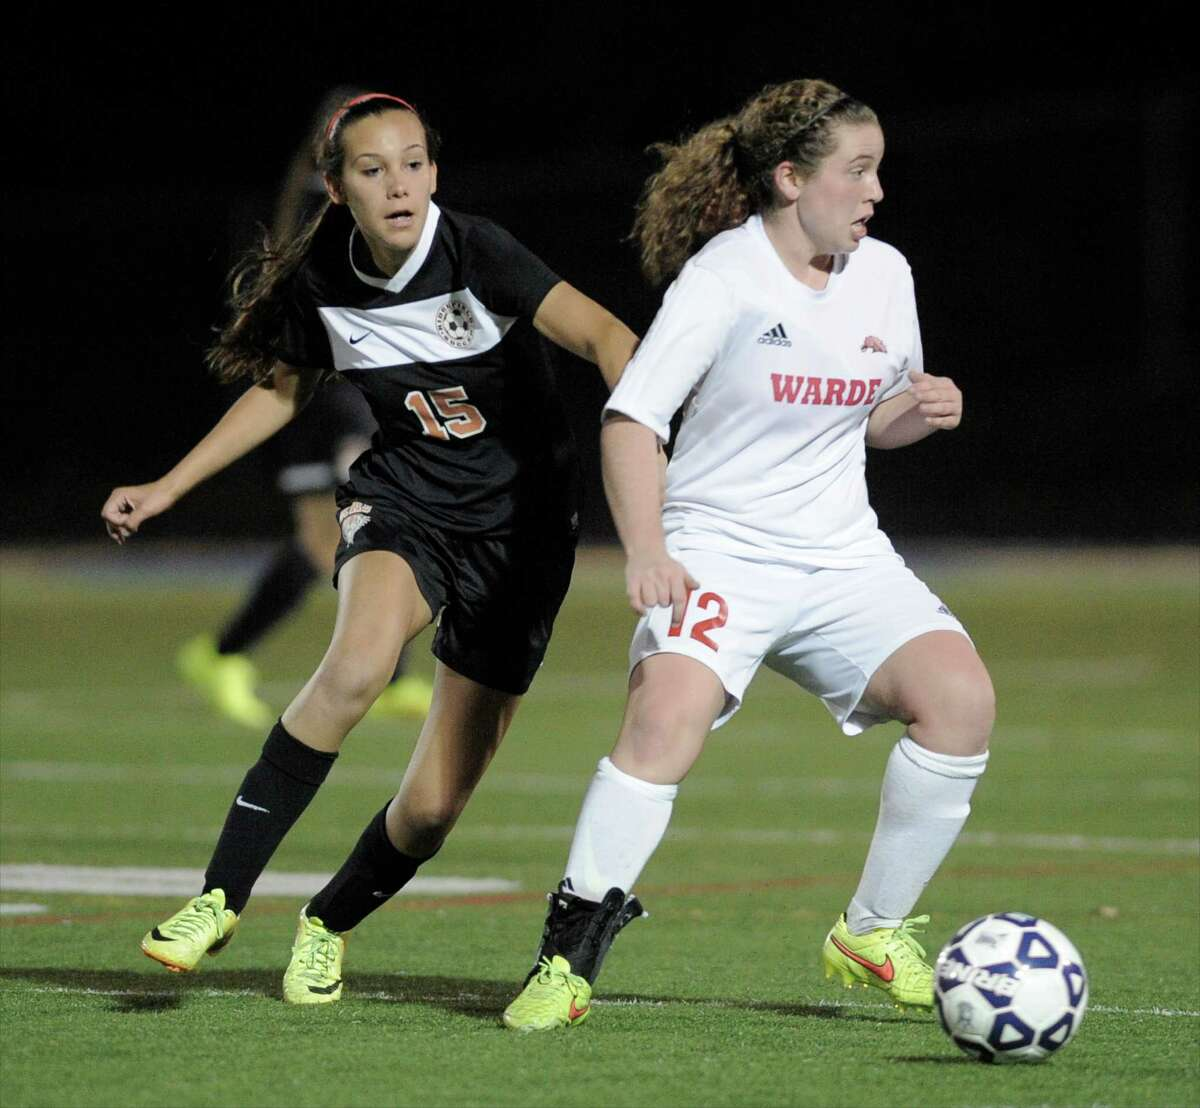 Warde's Anna Glovin (12) controls the ball against Ridgefield in last year's CIAC tournament. The Mustangs fell in the Class LL championship in double overtime to Glastonbury. Glovin is one of many returnees for coach Tom Cunningham this season.